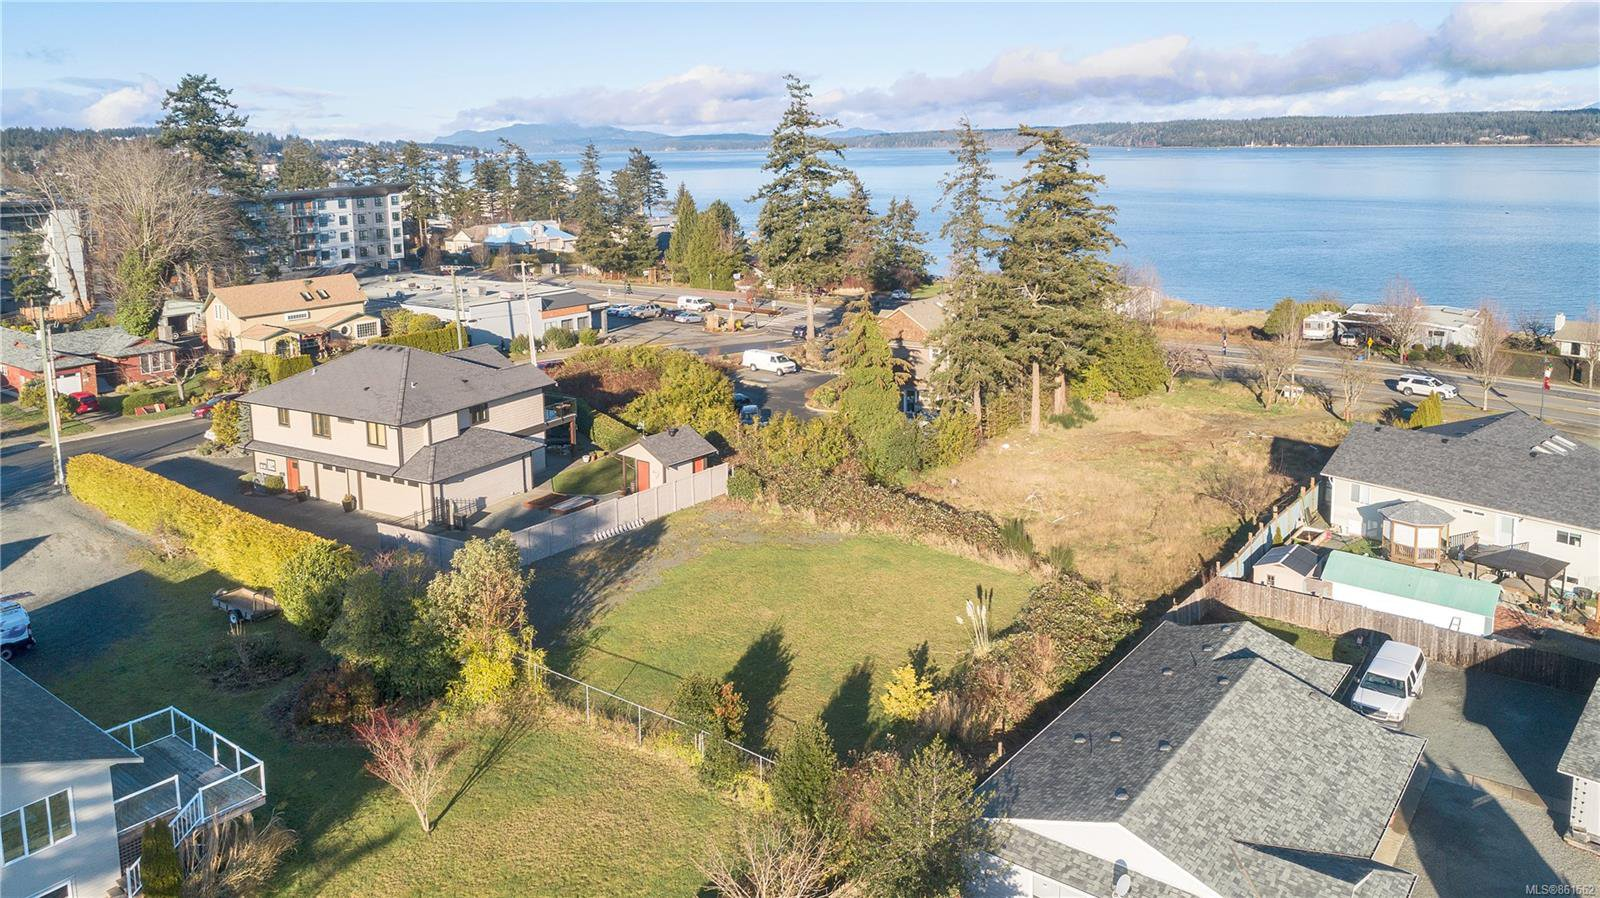 Main Photo: 97 Larwood Rd in : CR Willow Point Land for sale (Campbell River)  : MLS®# 861562